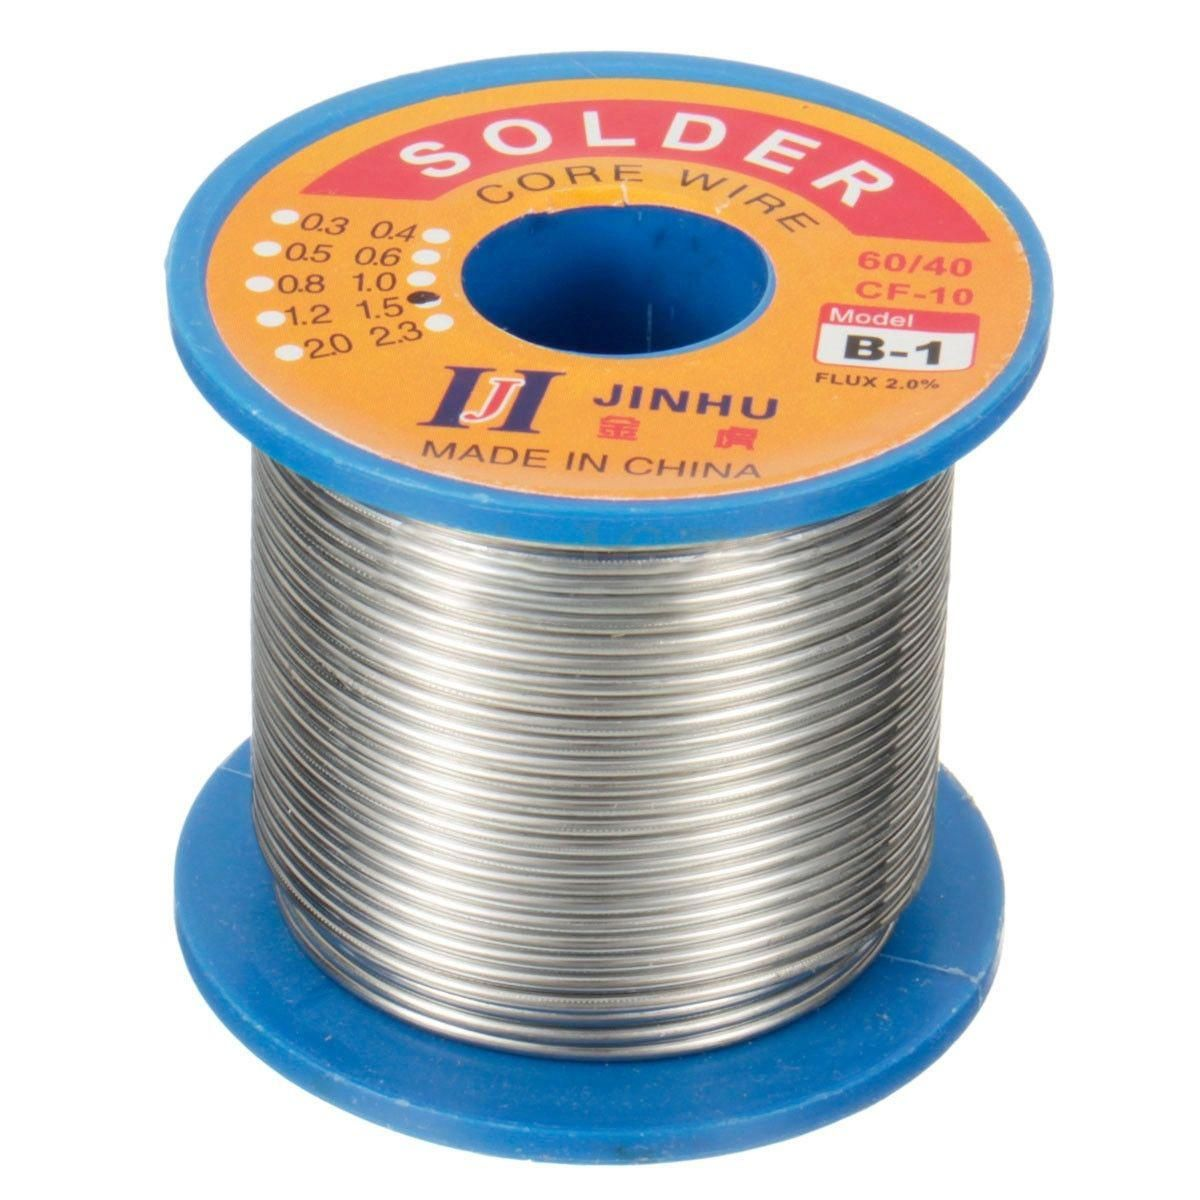 Hot Sale Jinhu 250g 60 40 Rosin Core Solder Welding Iron Wire Tin Lead 2 Flux Reel Tube Wire Reel Soldering Wire